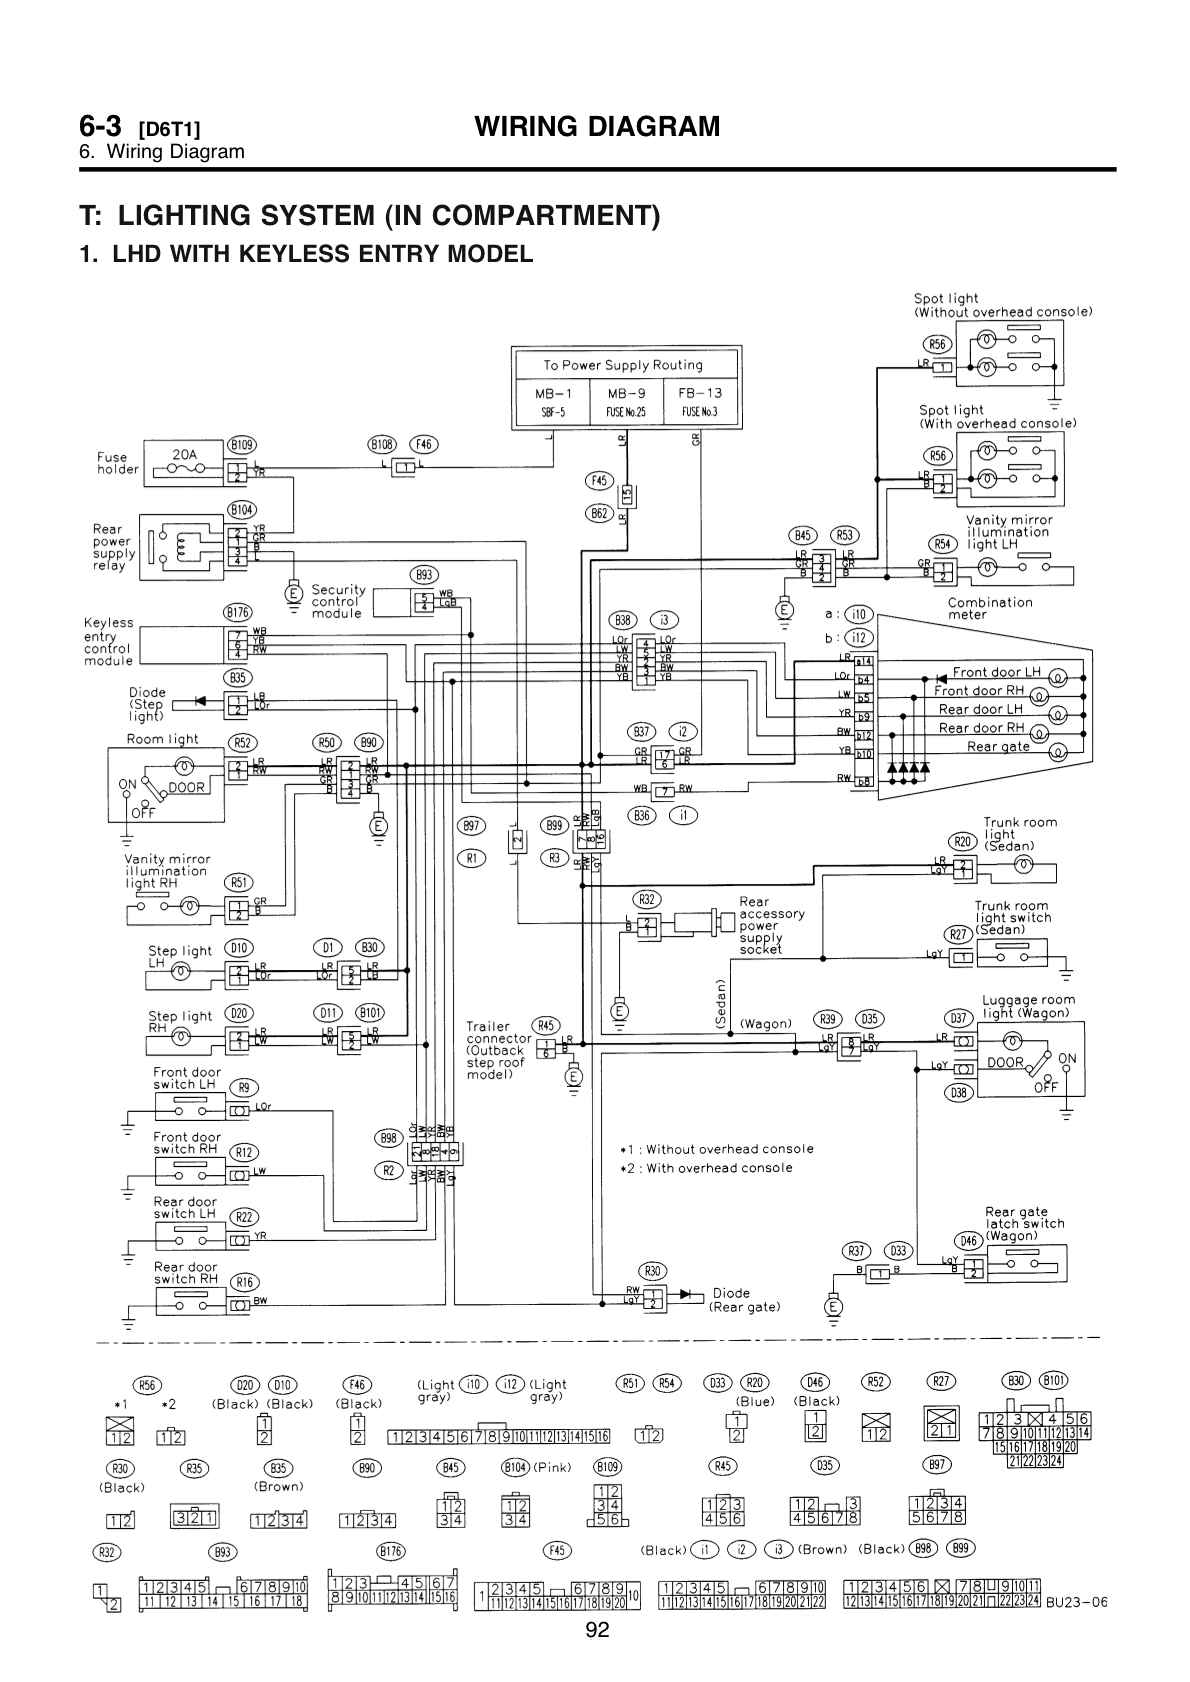 wiring_diagram1 93 subaru legacy wiring diagram 1995 subaru legacy wiring diagram 1996 Subaru Impreza at bayanpartner.co